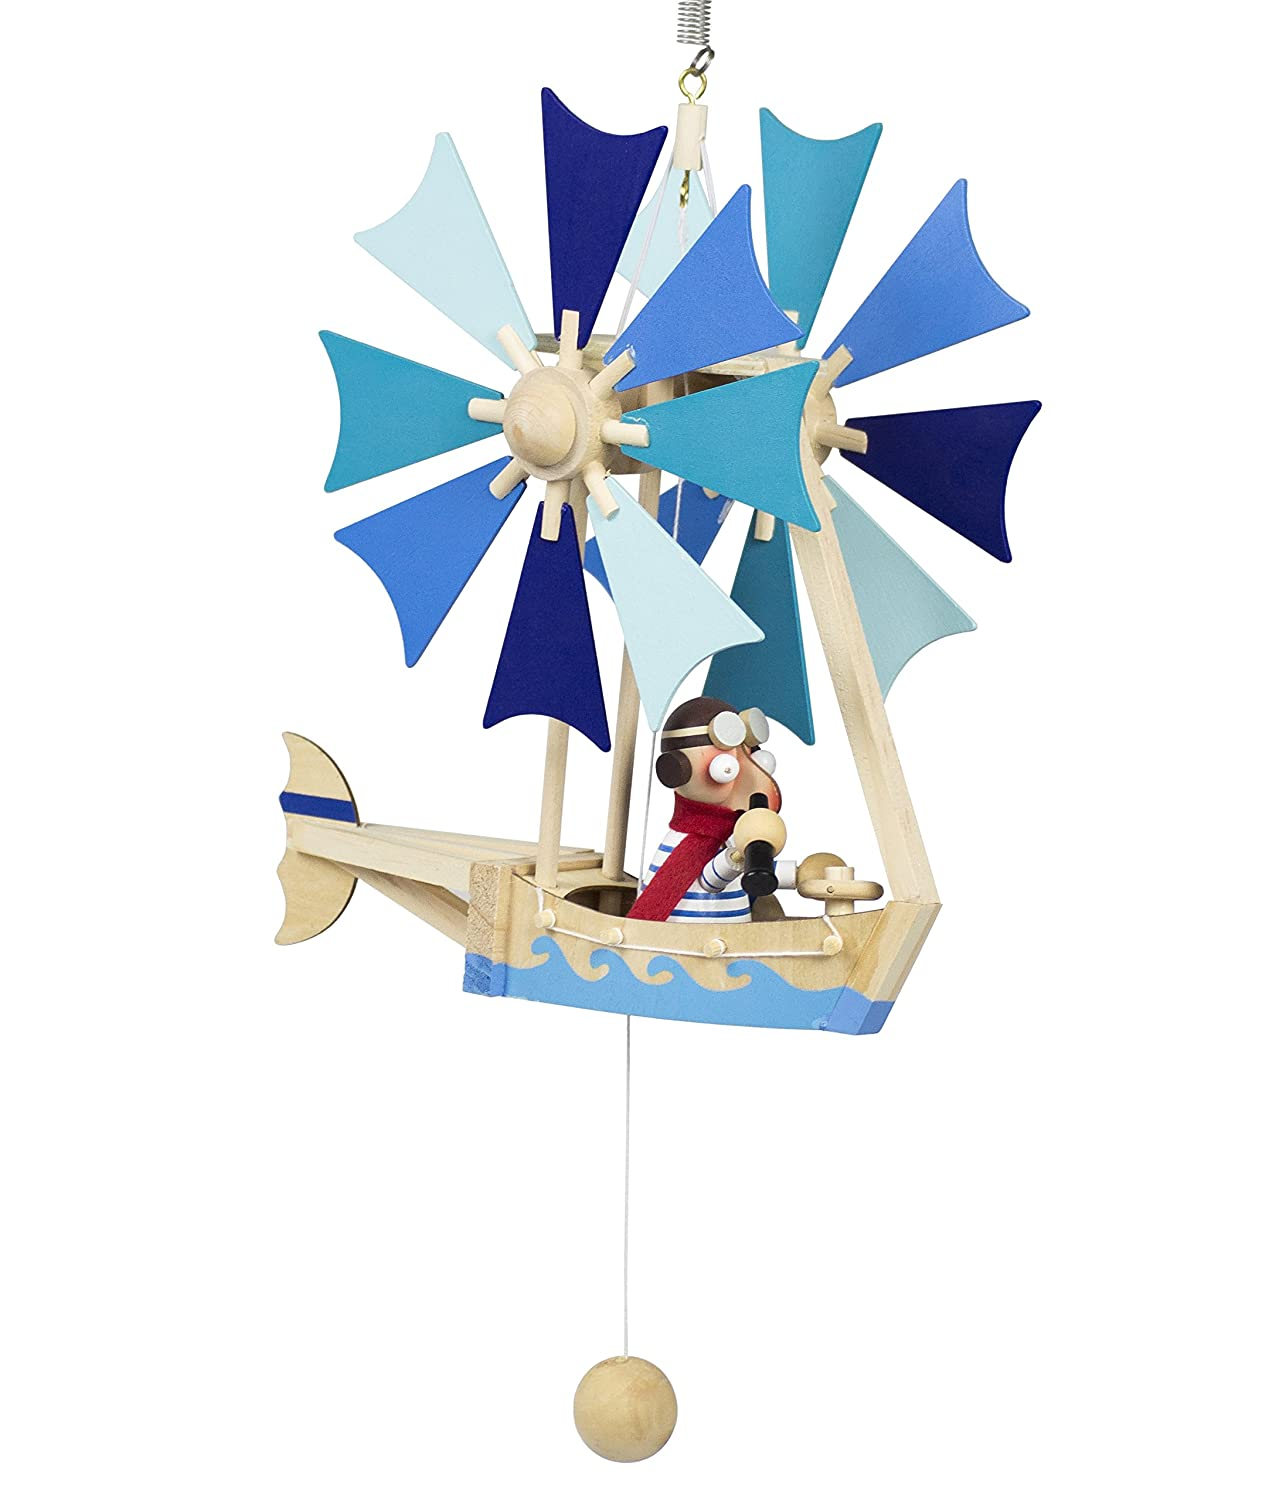 Wupper Airlines Wooden Hanging Mobile (Blue windwheel boat) by Wupper Airlines   B005406N4I